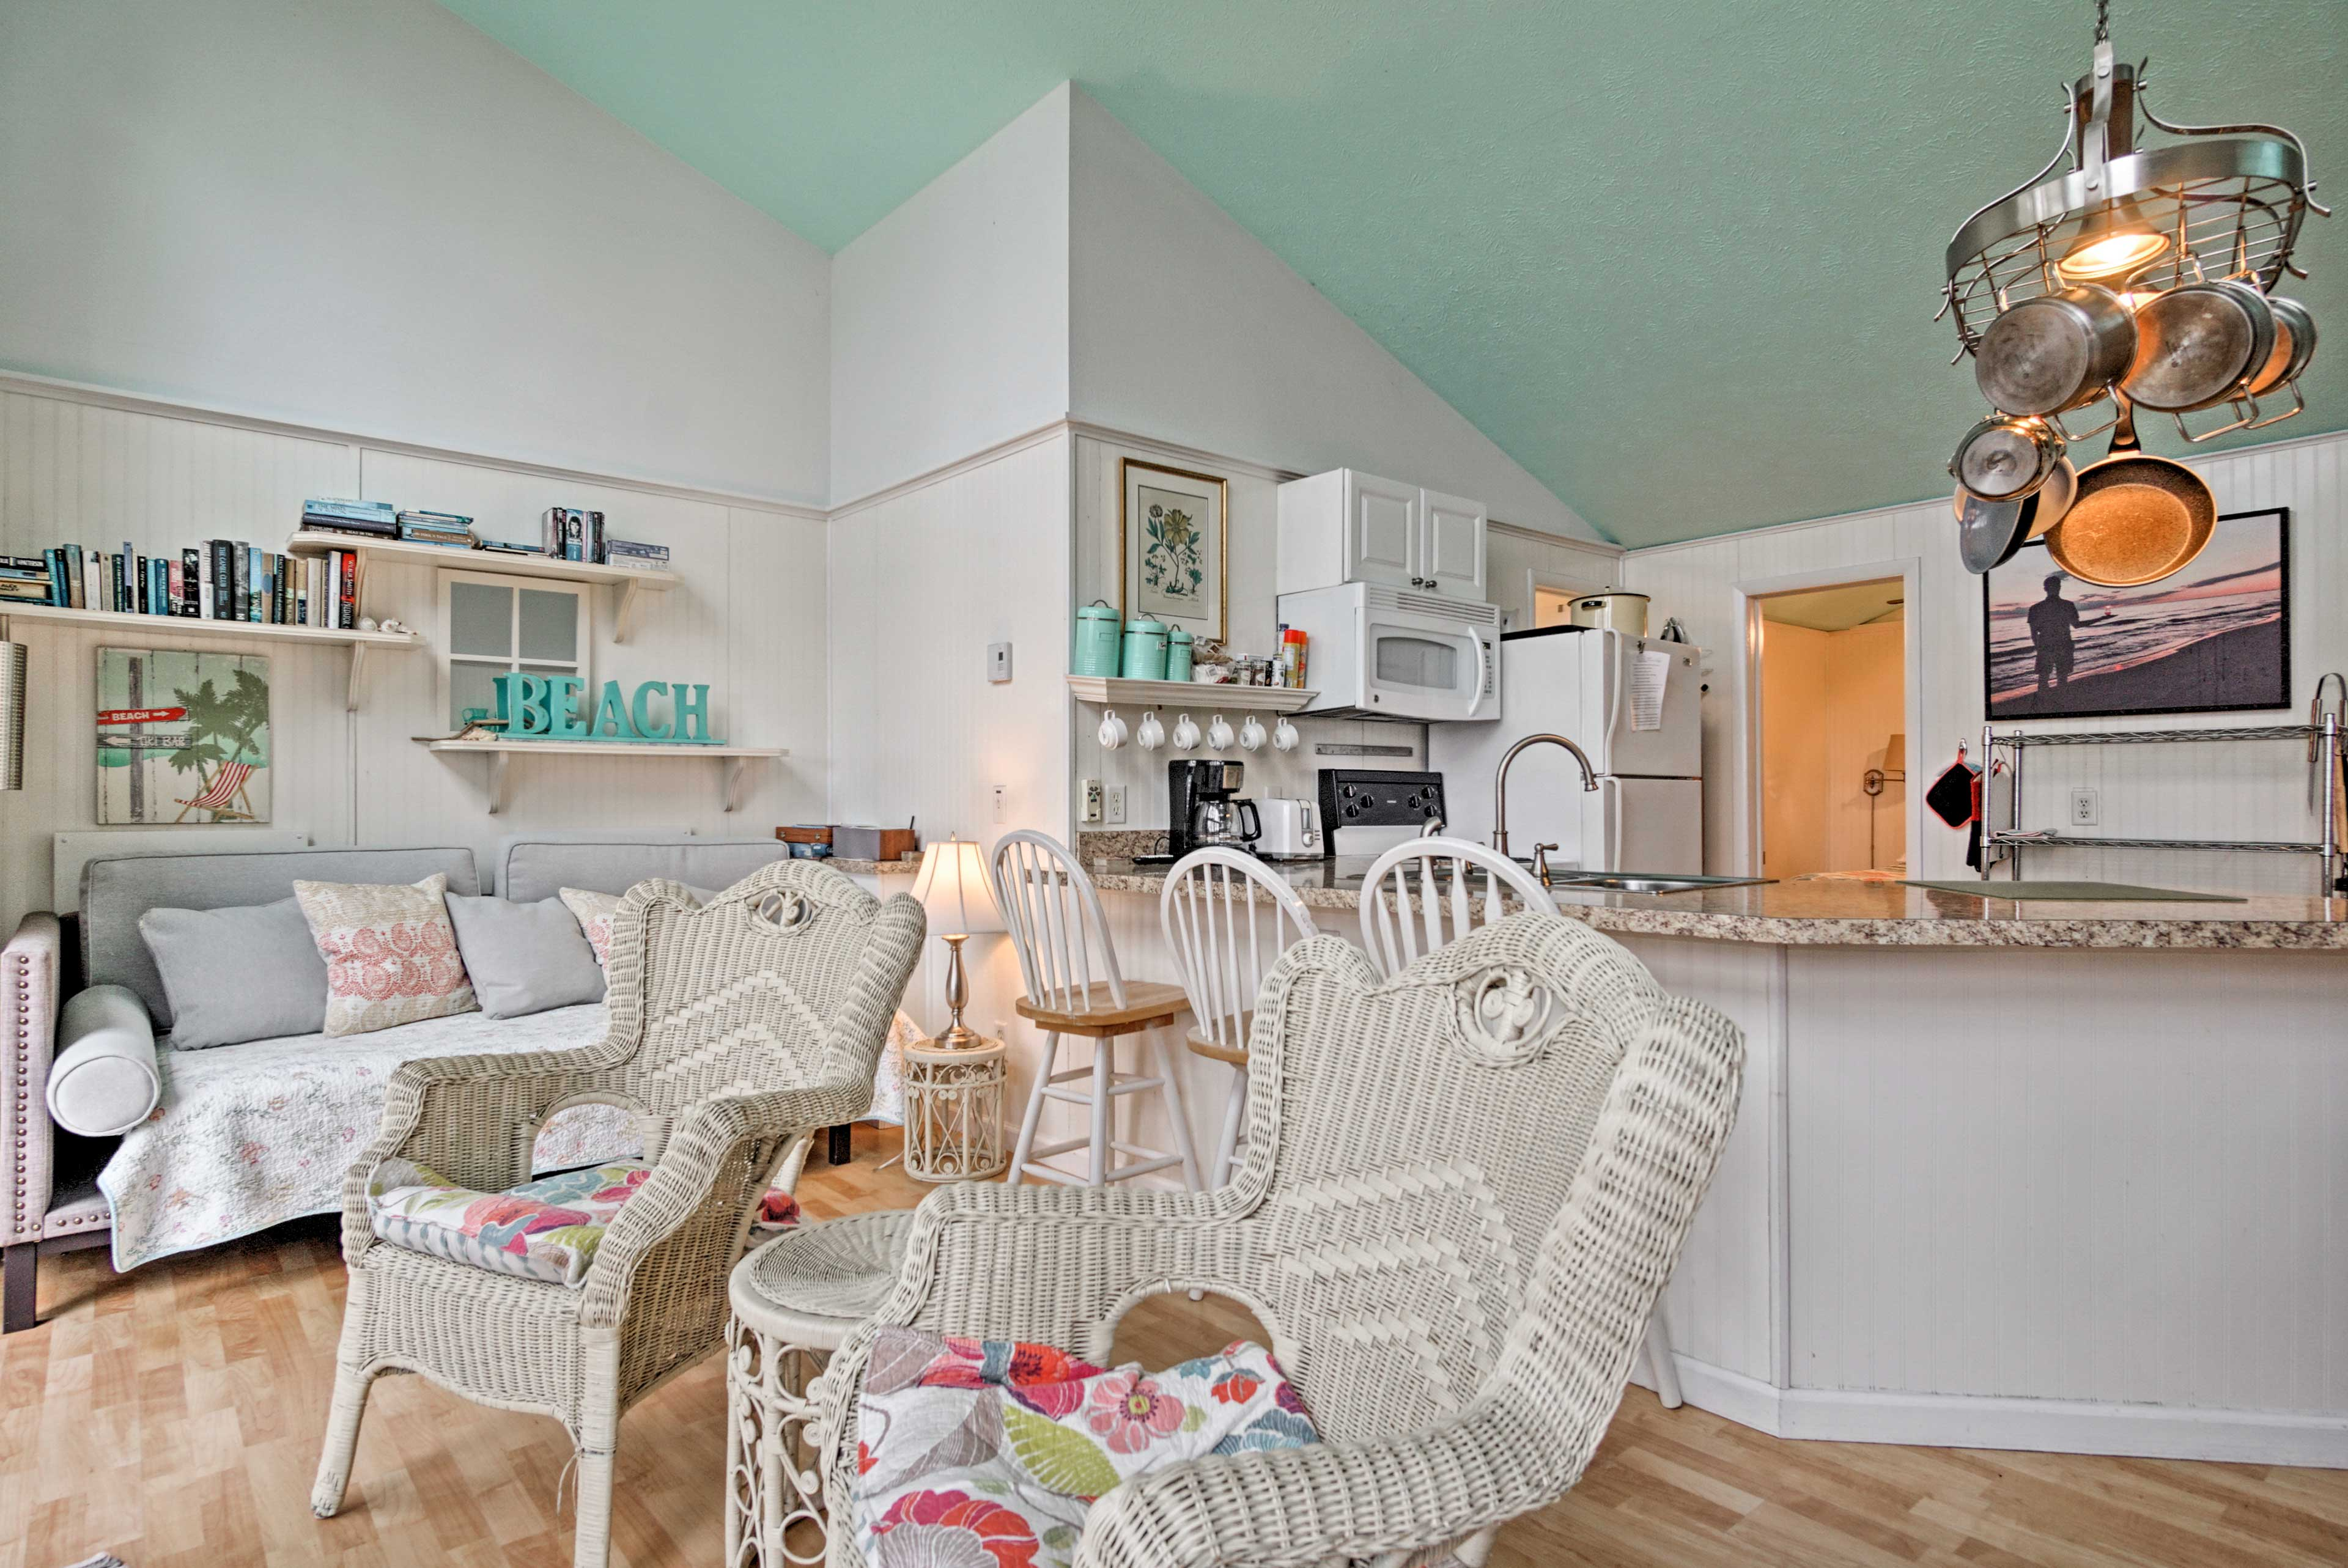 The main living area of the cottage is open and airy, inviting you to settle right in.